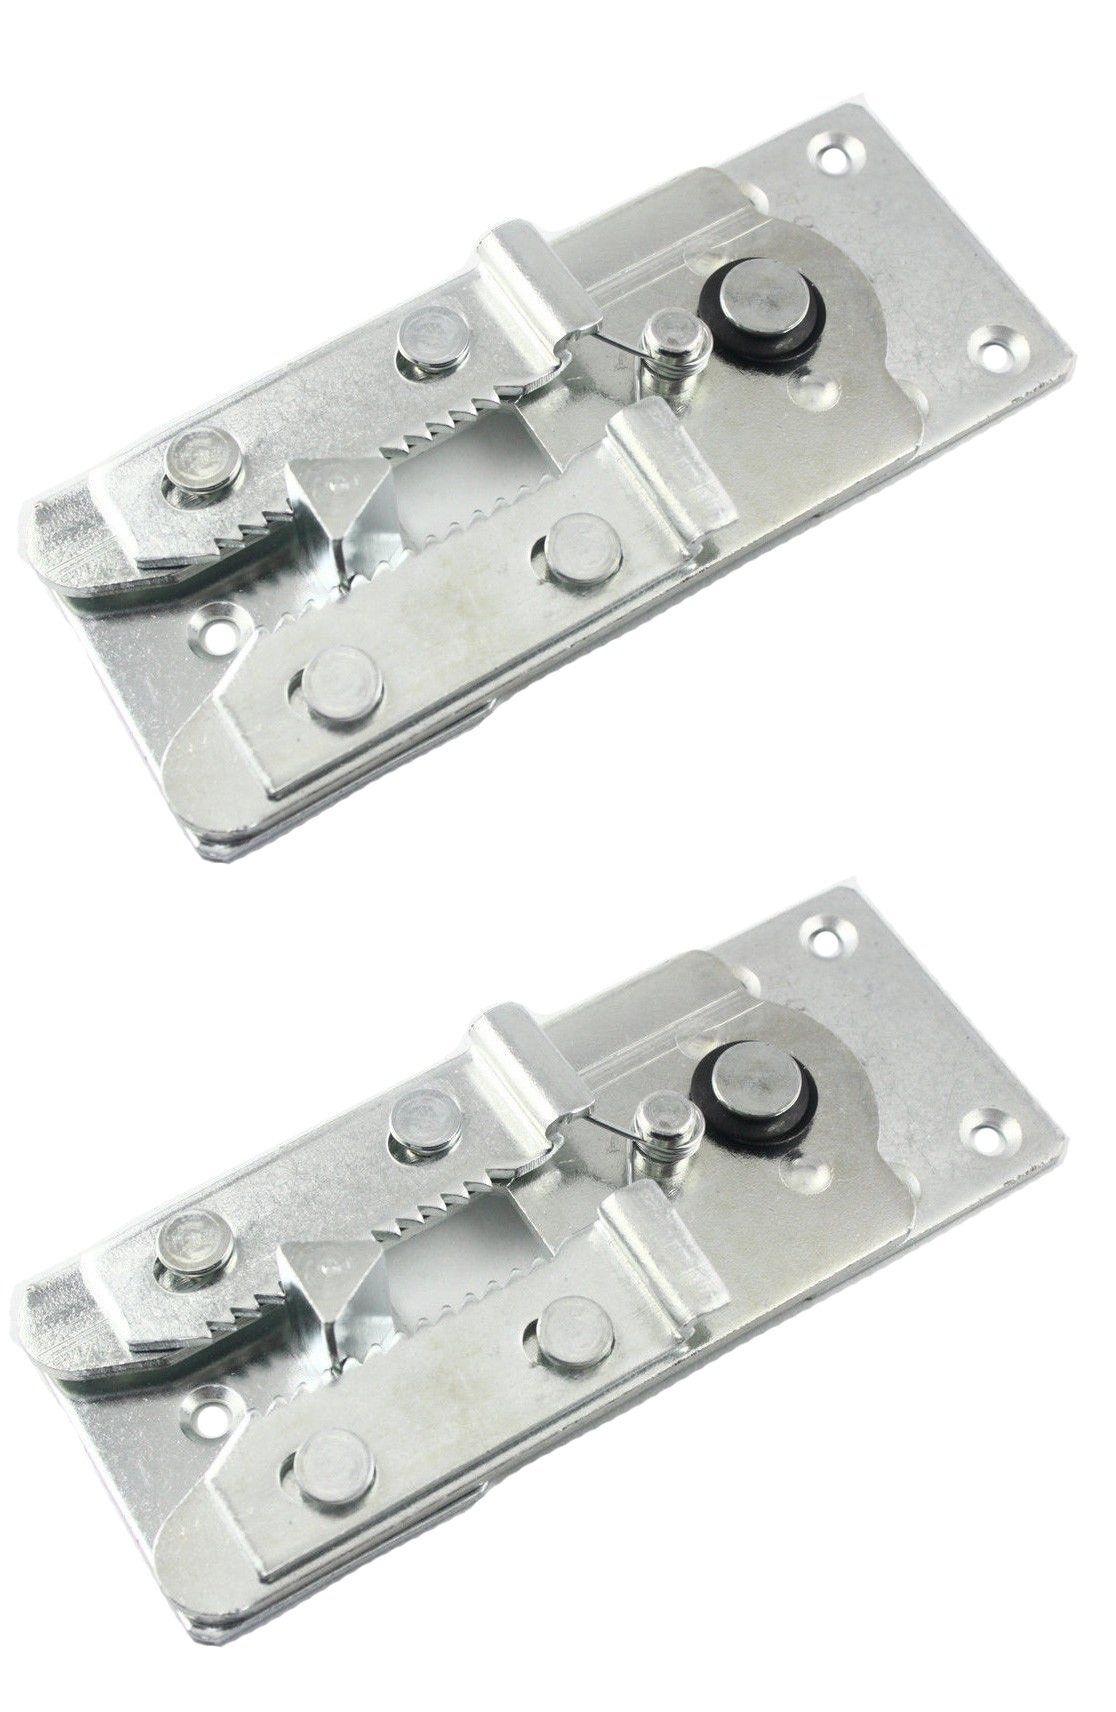 Two 2 Metal Couch Sofa Snap Style Sectional Connector With Screws You Could Obtain More Details By Clic With Images Heavy Duty Furniture Sectional Sectional Furniture